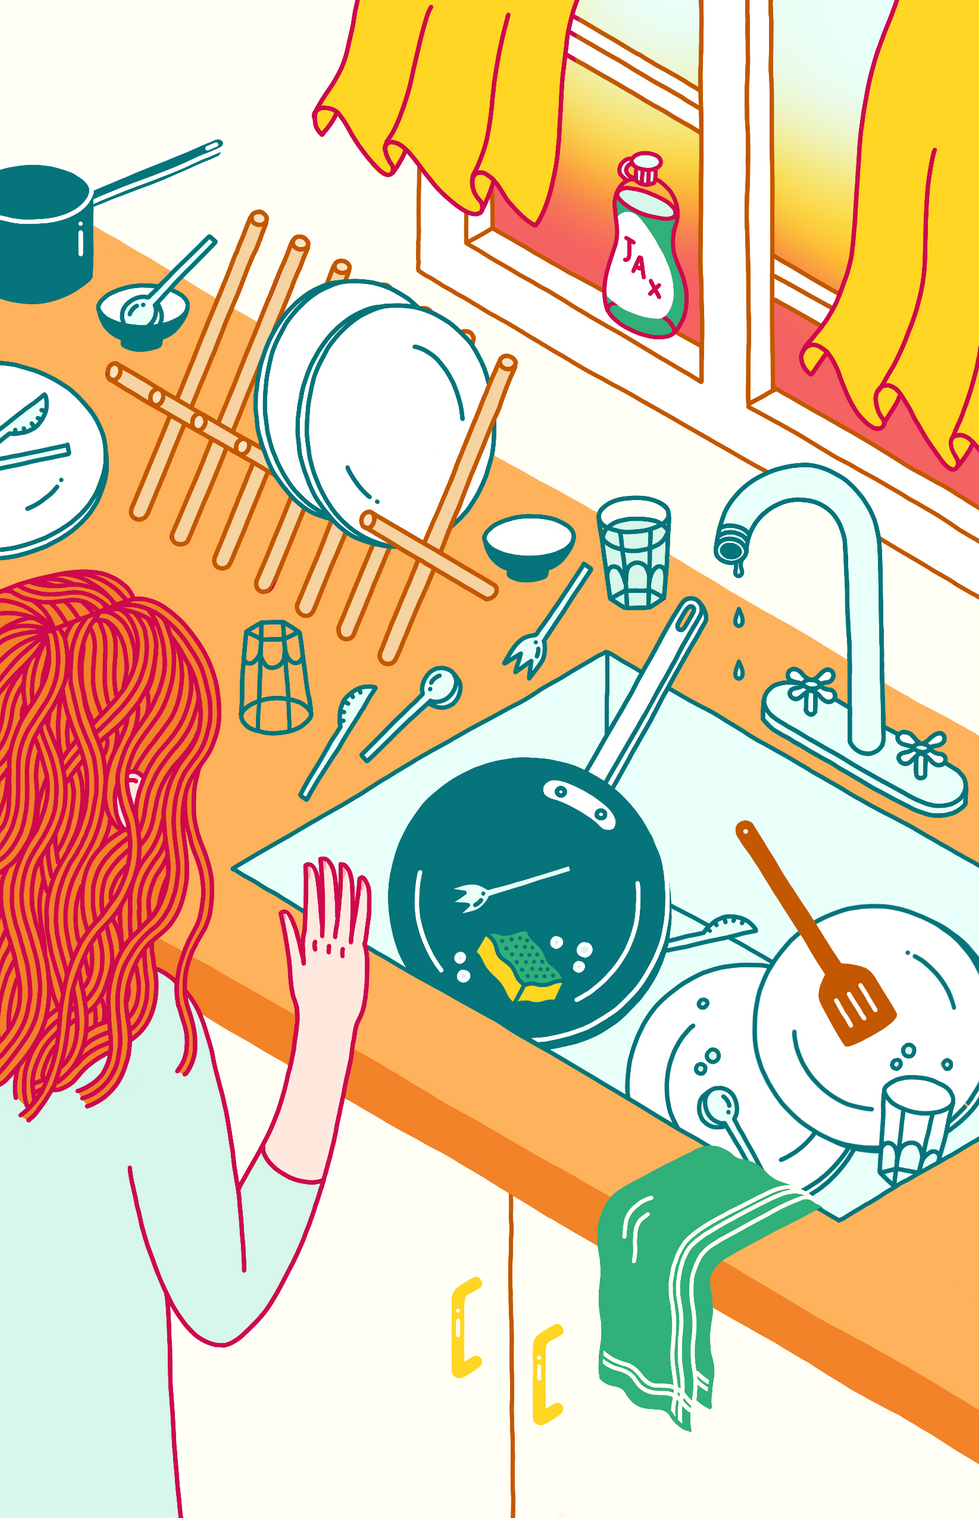 dishes_FINAL300dpi.png